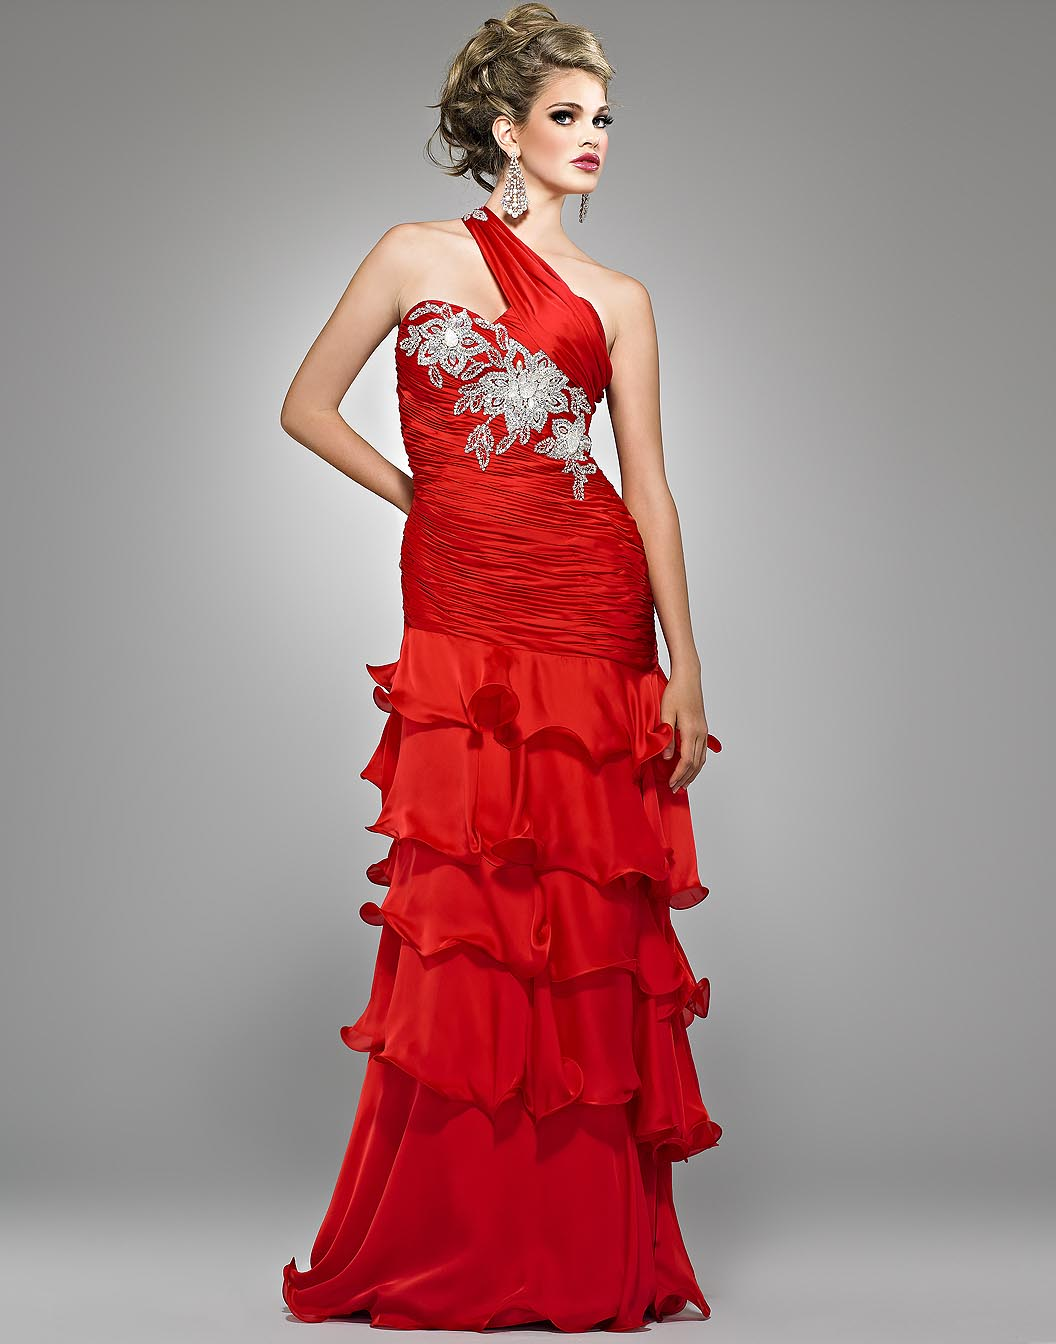 Plus Size Clothing Boutiques In Chicago - Boutique Prom ...